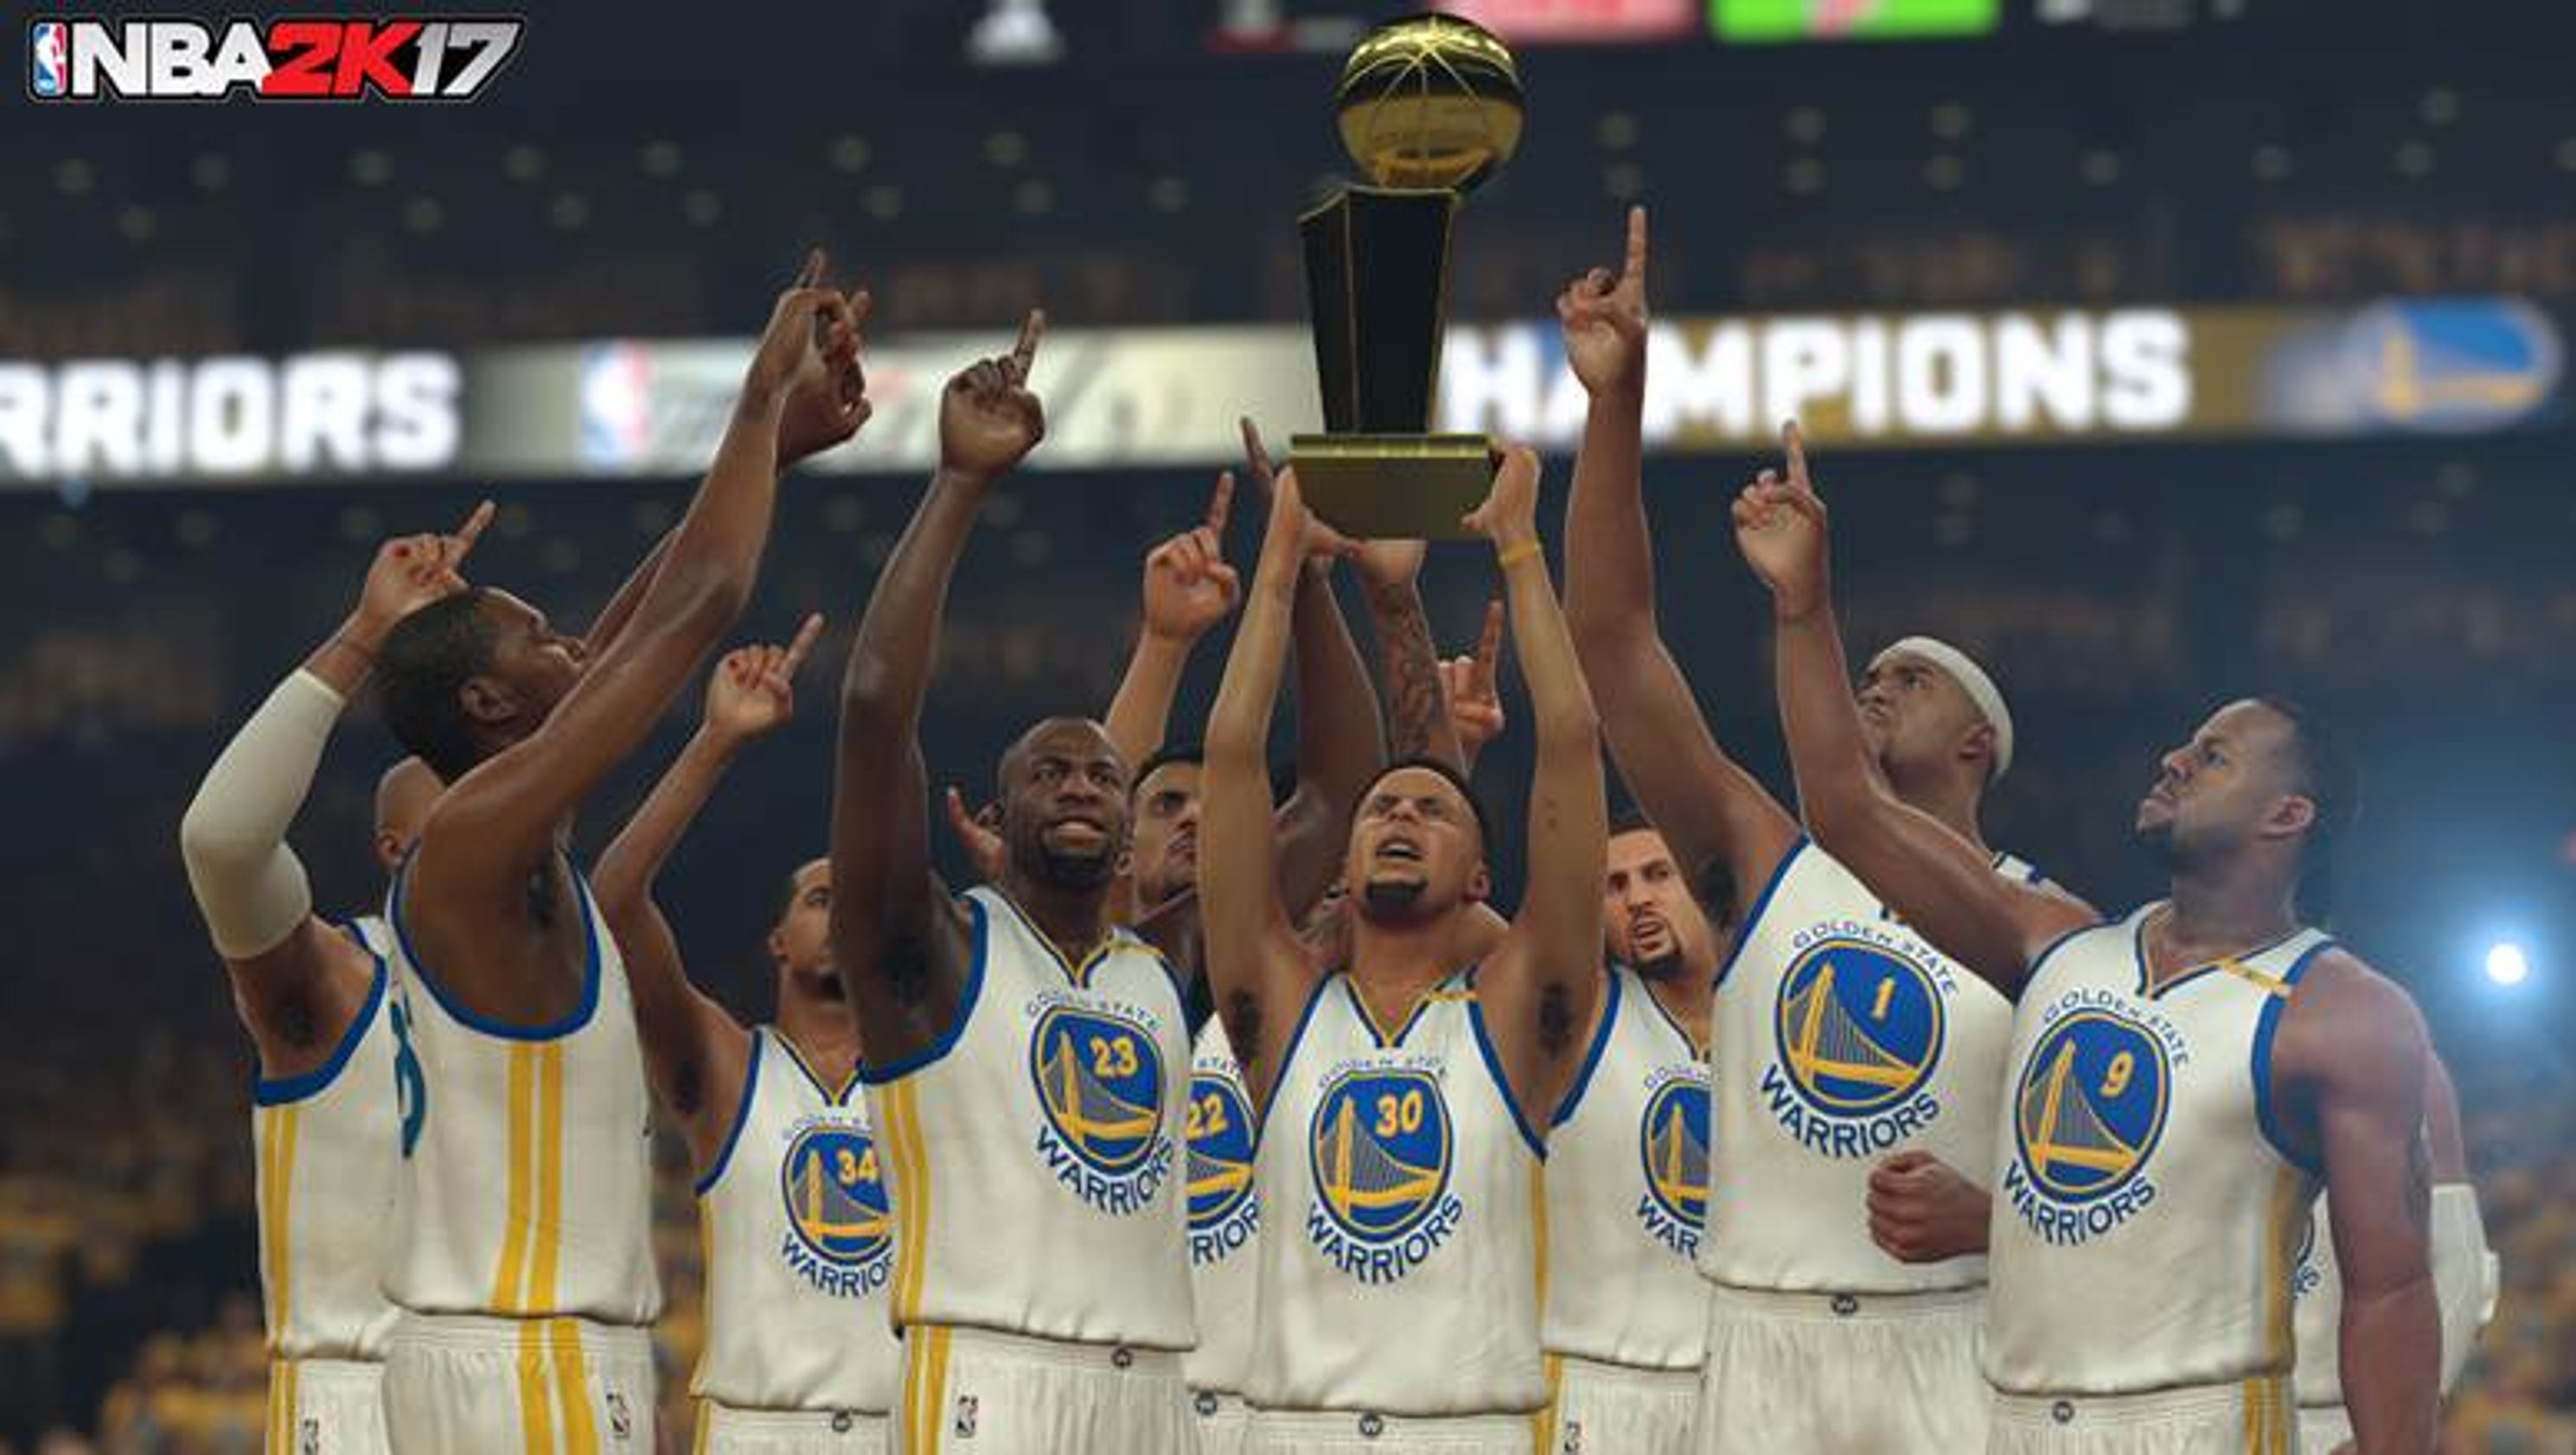 NBA 2K17 Finals simulation: Warriors win, Kevin Durant crowned MVP